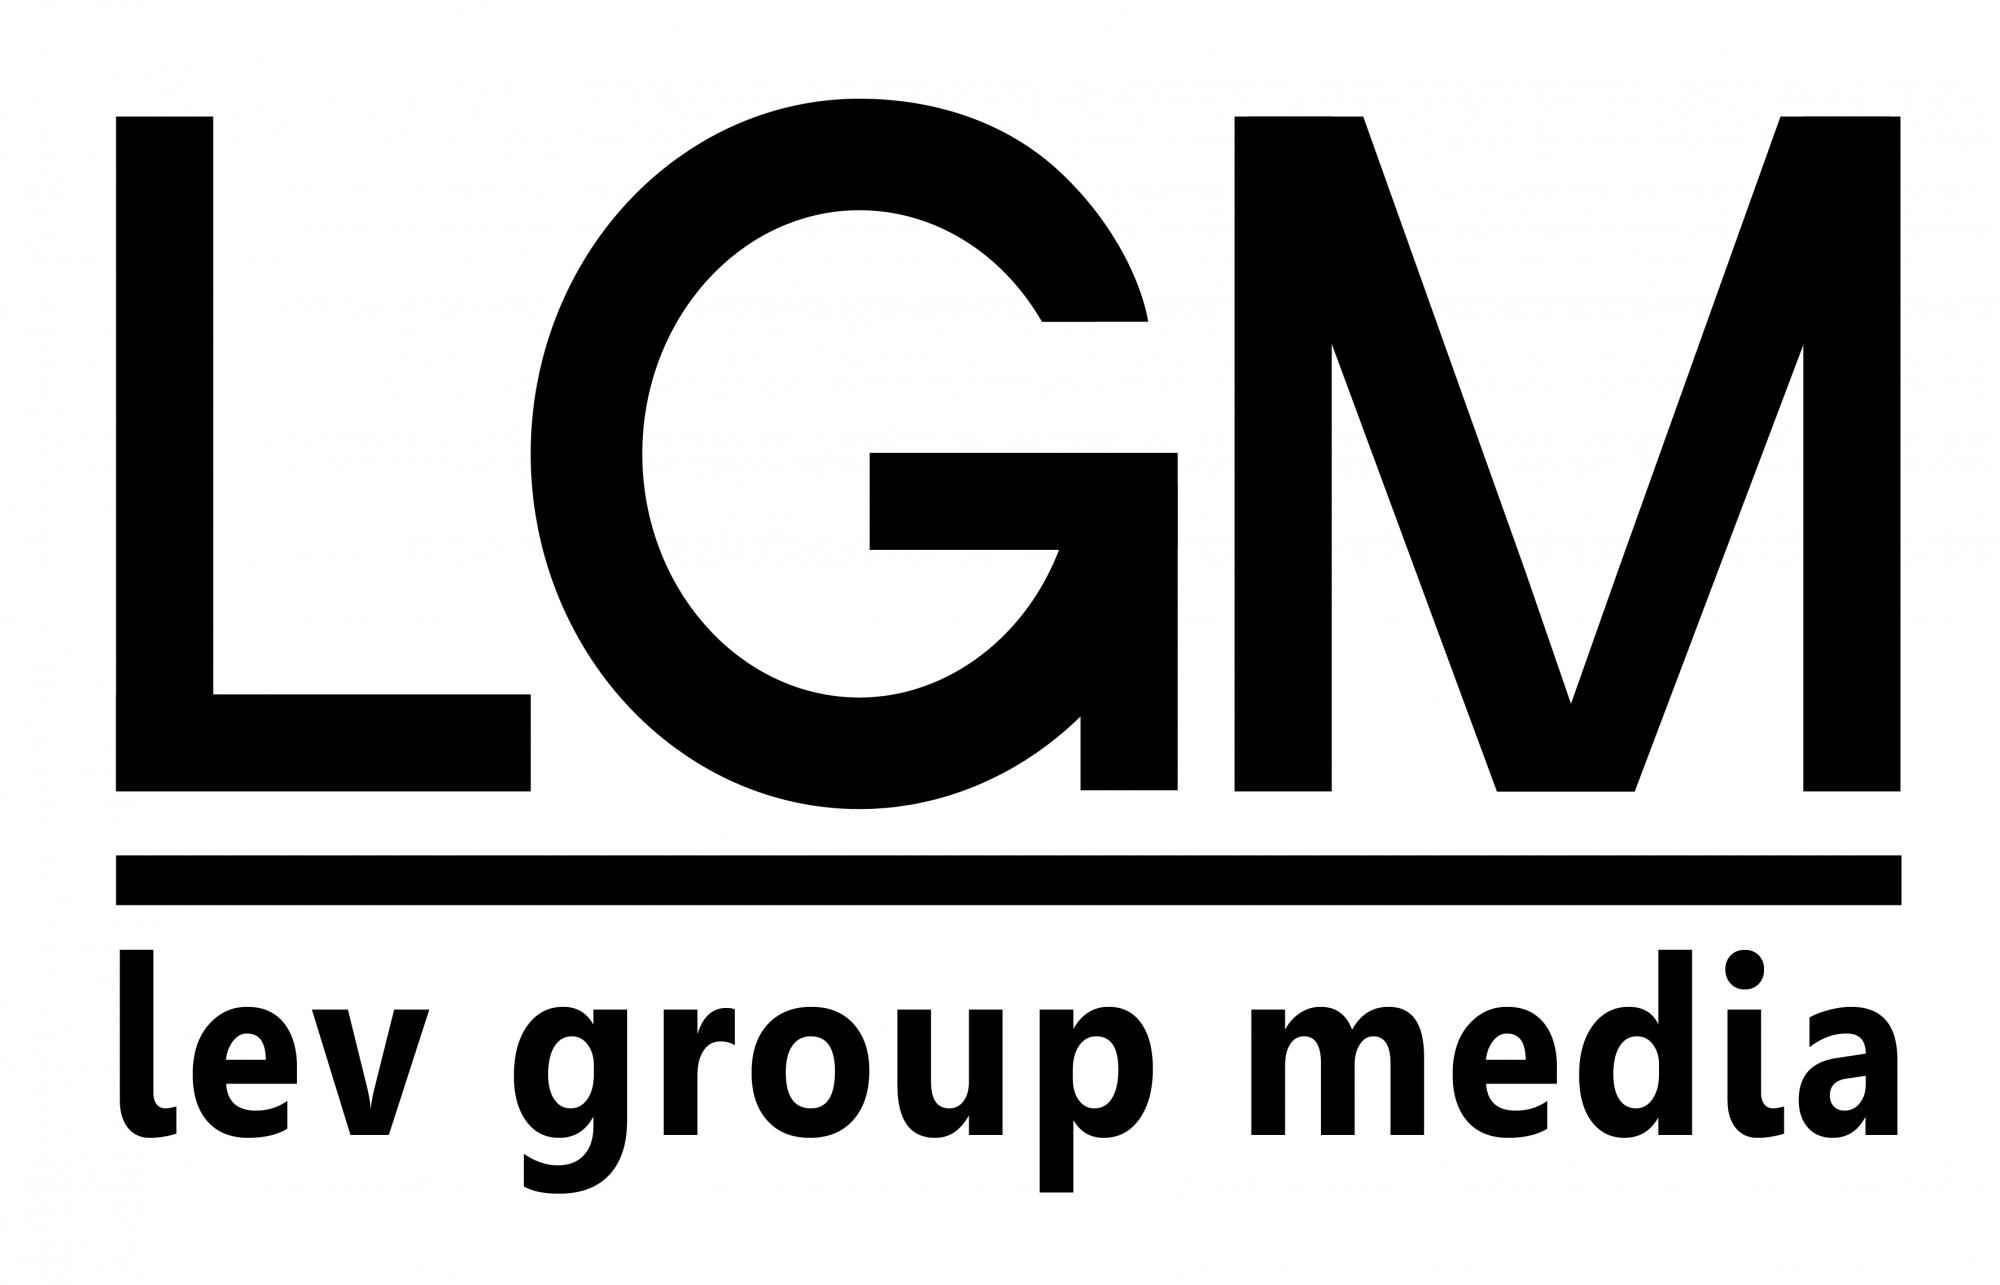 LGM lev group media